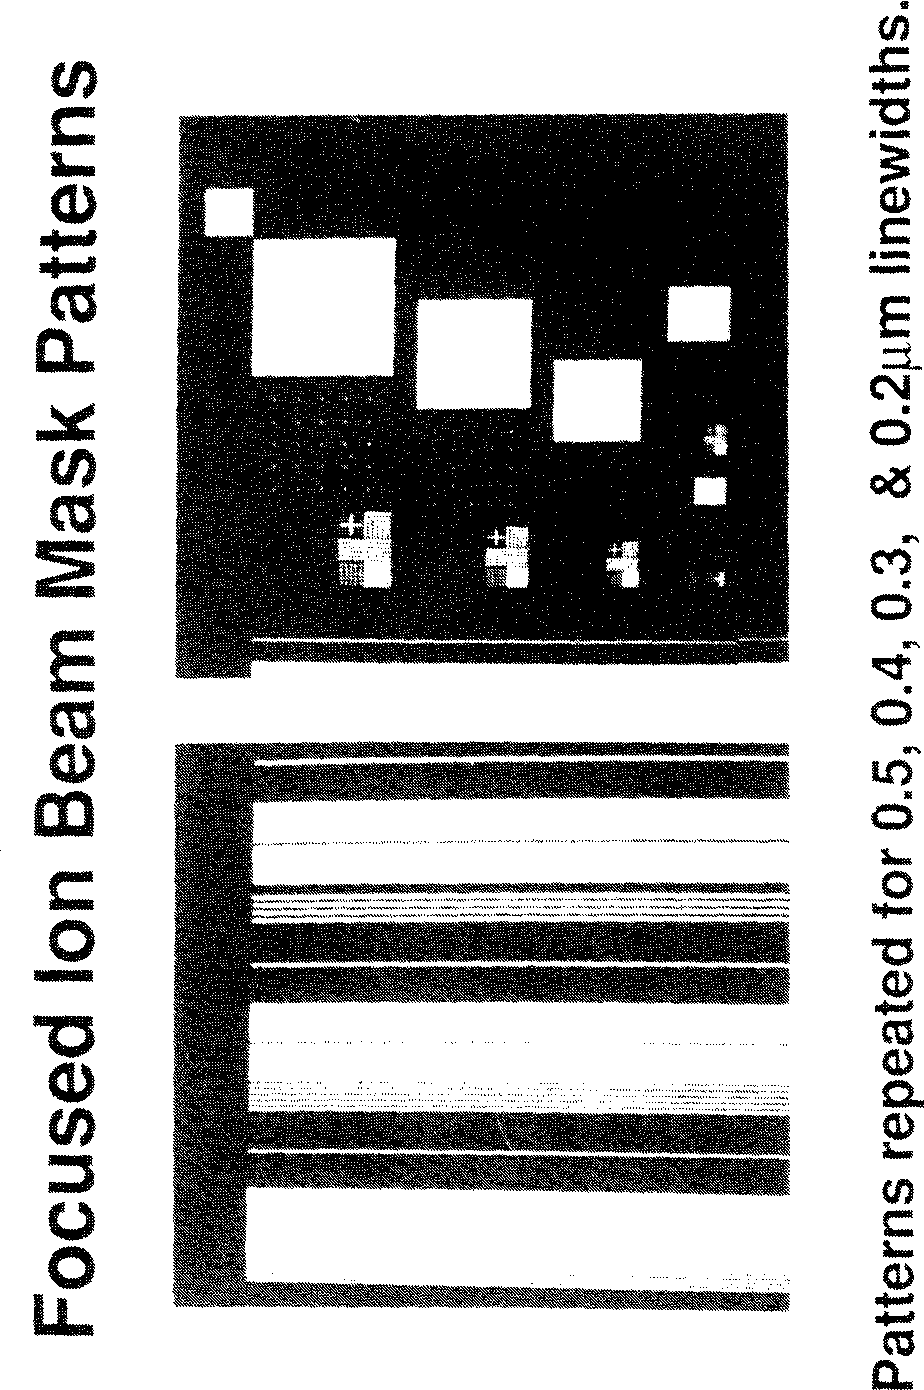 Figure 6.3: Mask patterns used in the diffraction experiments.